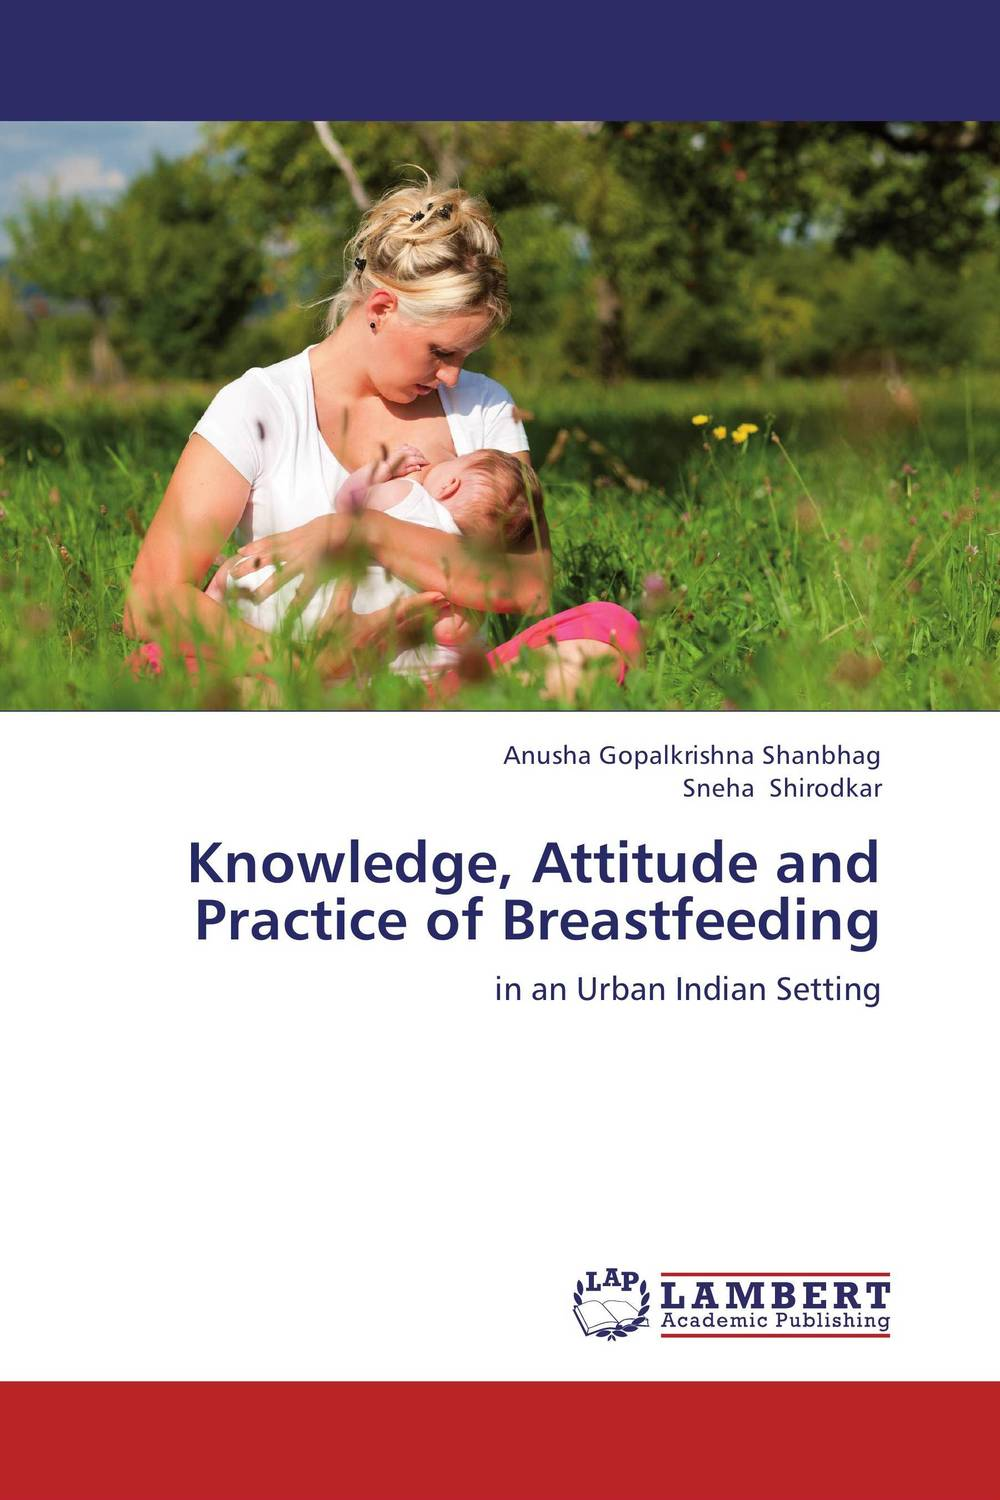 Knowledge, Attitude and Practice of Breastfeeding breastfeeding knowledge in dhaka bangladesh